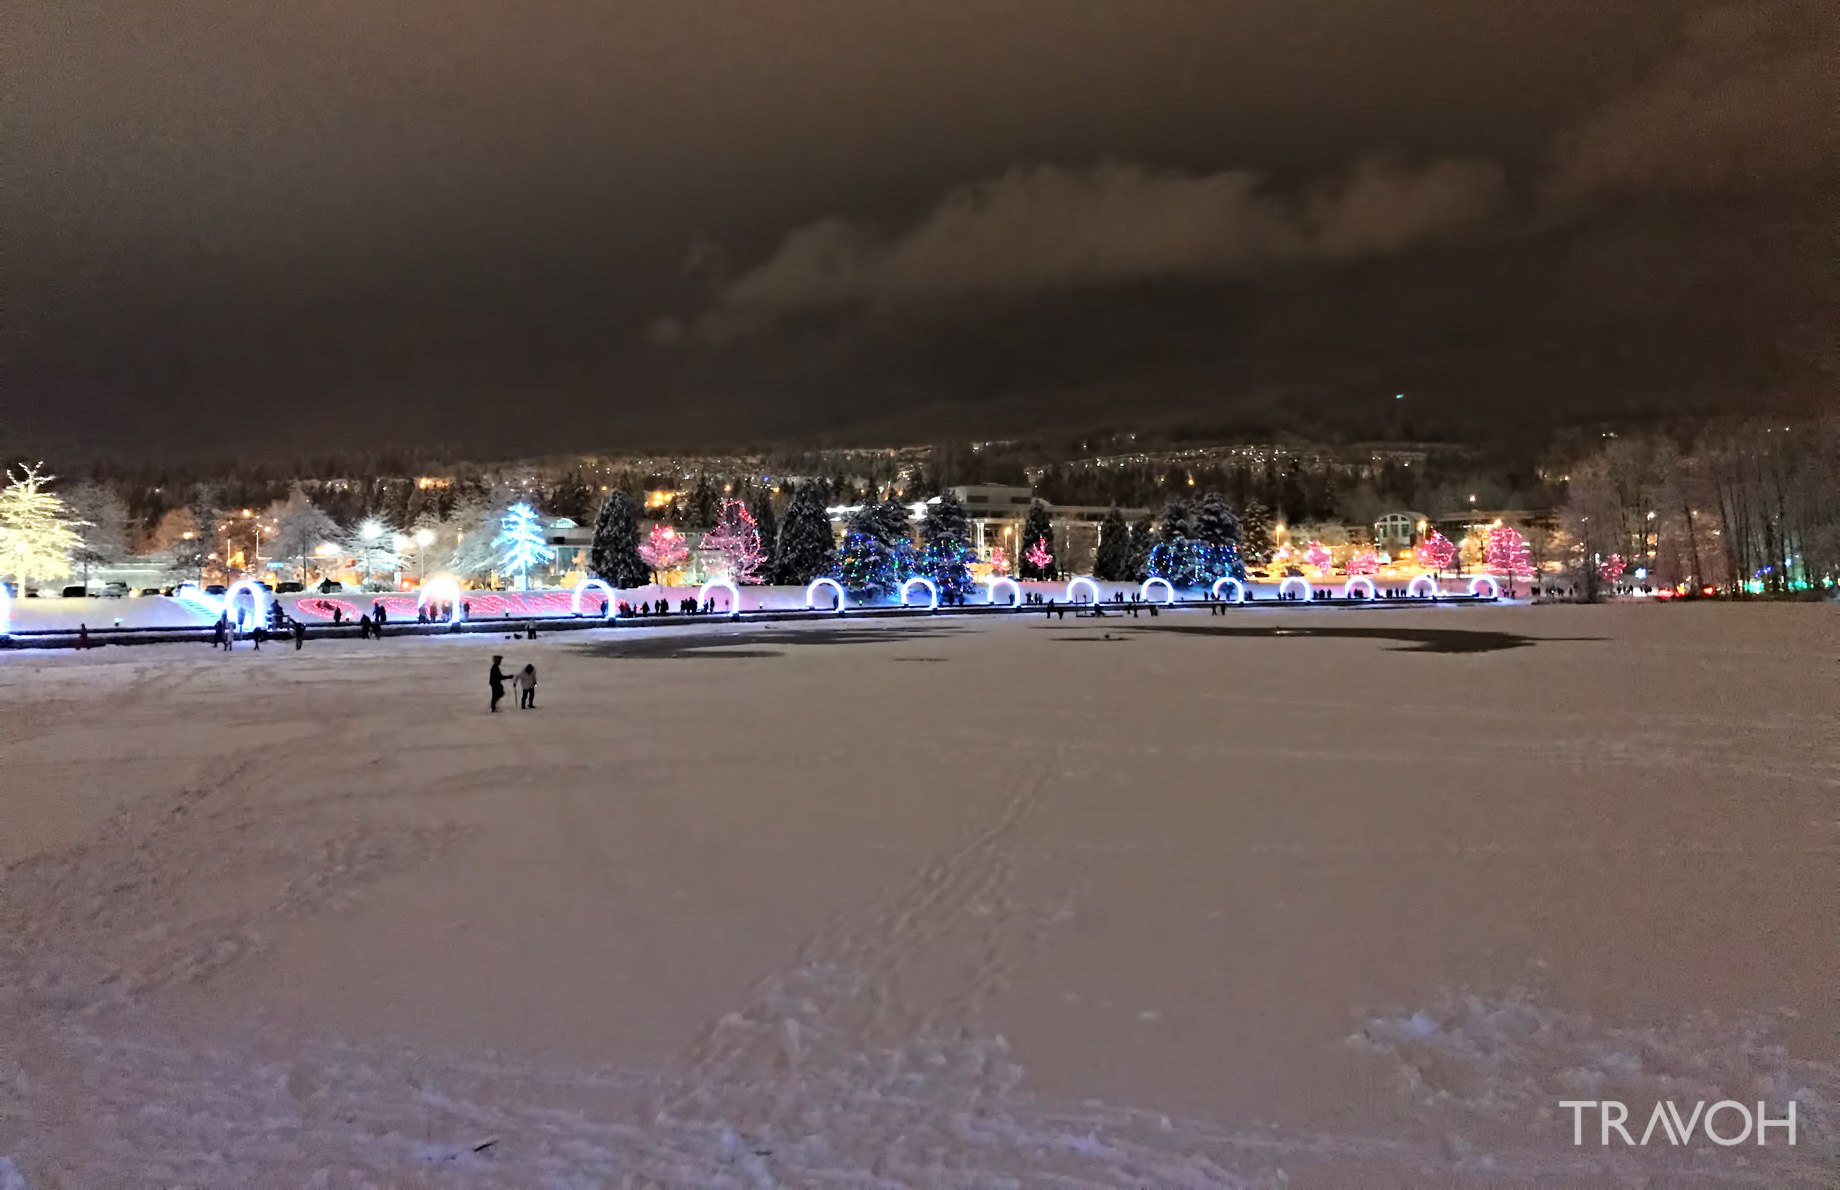 Lafarge Winter Lights Display - Spectacle for the Holiday Season and New Year Celebration